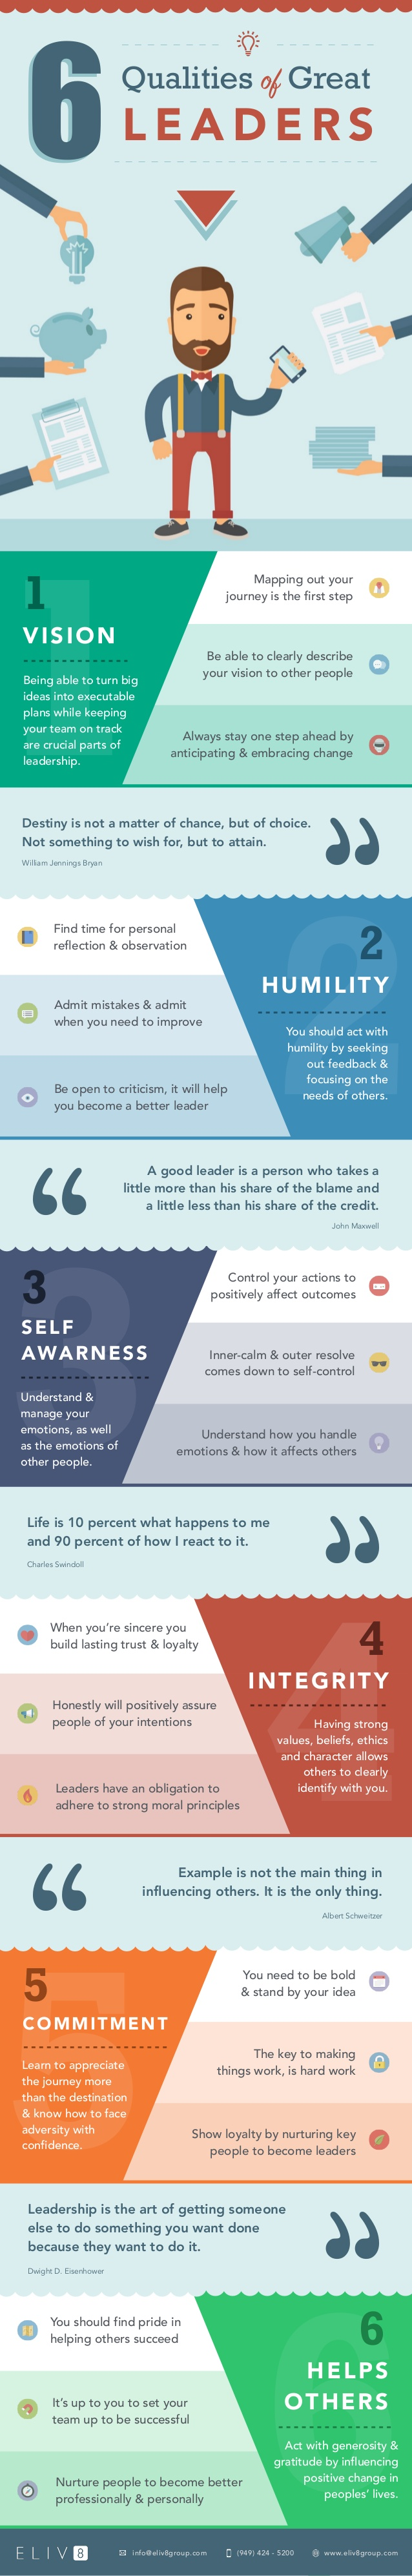 top-6-qualities-of-great-leaders-infographic-1-638